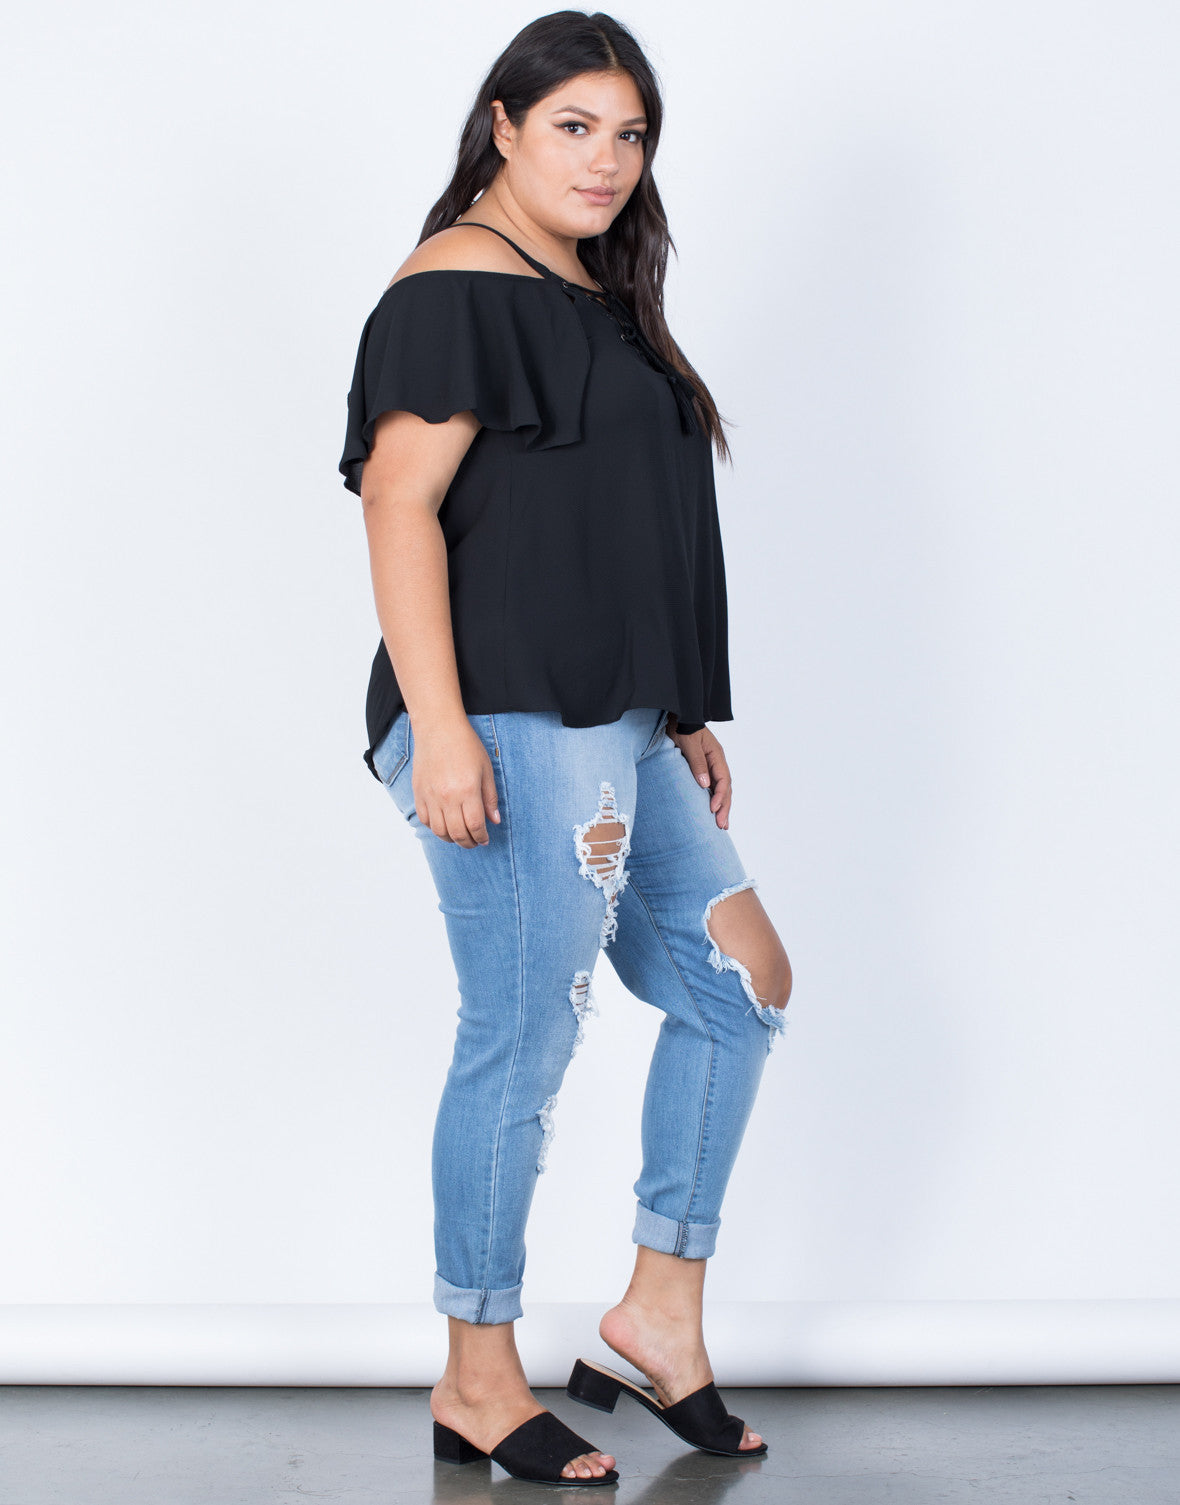 Black Plus Size Tassel Tied Top - Side View